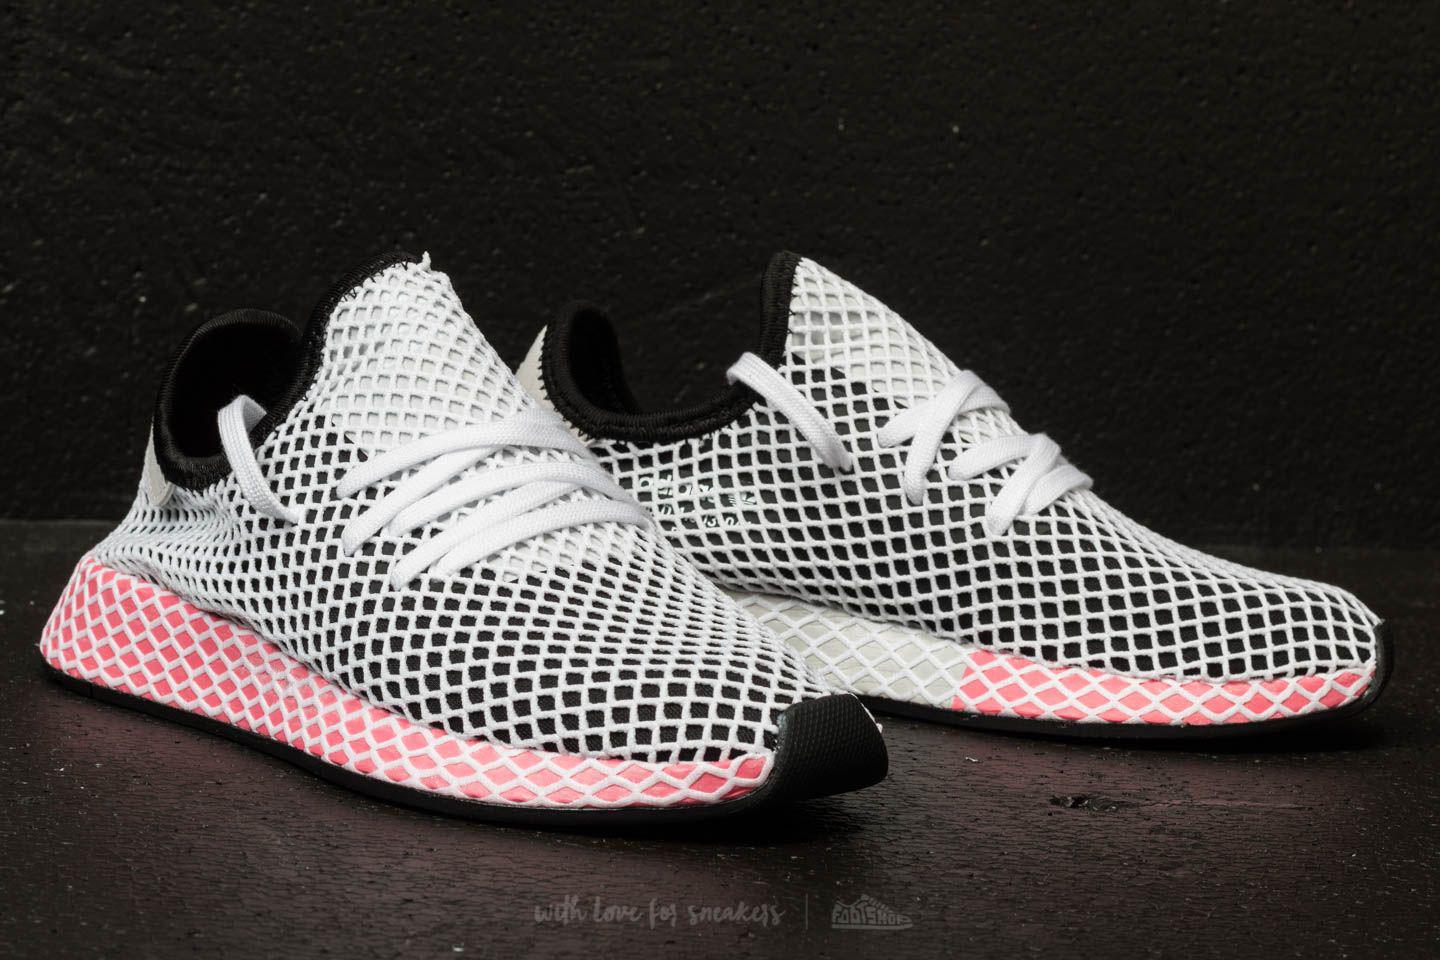 meet 0512c 08dae Lyst - adidas Originals Adidas Deerupt Runner W Core Black C